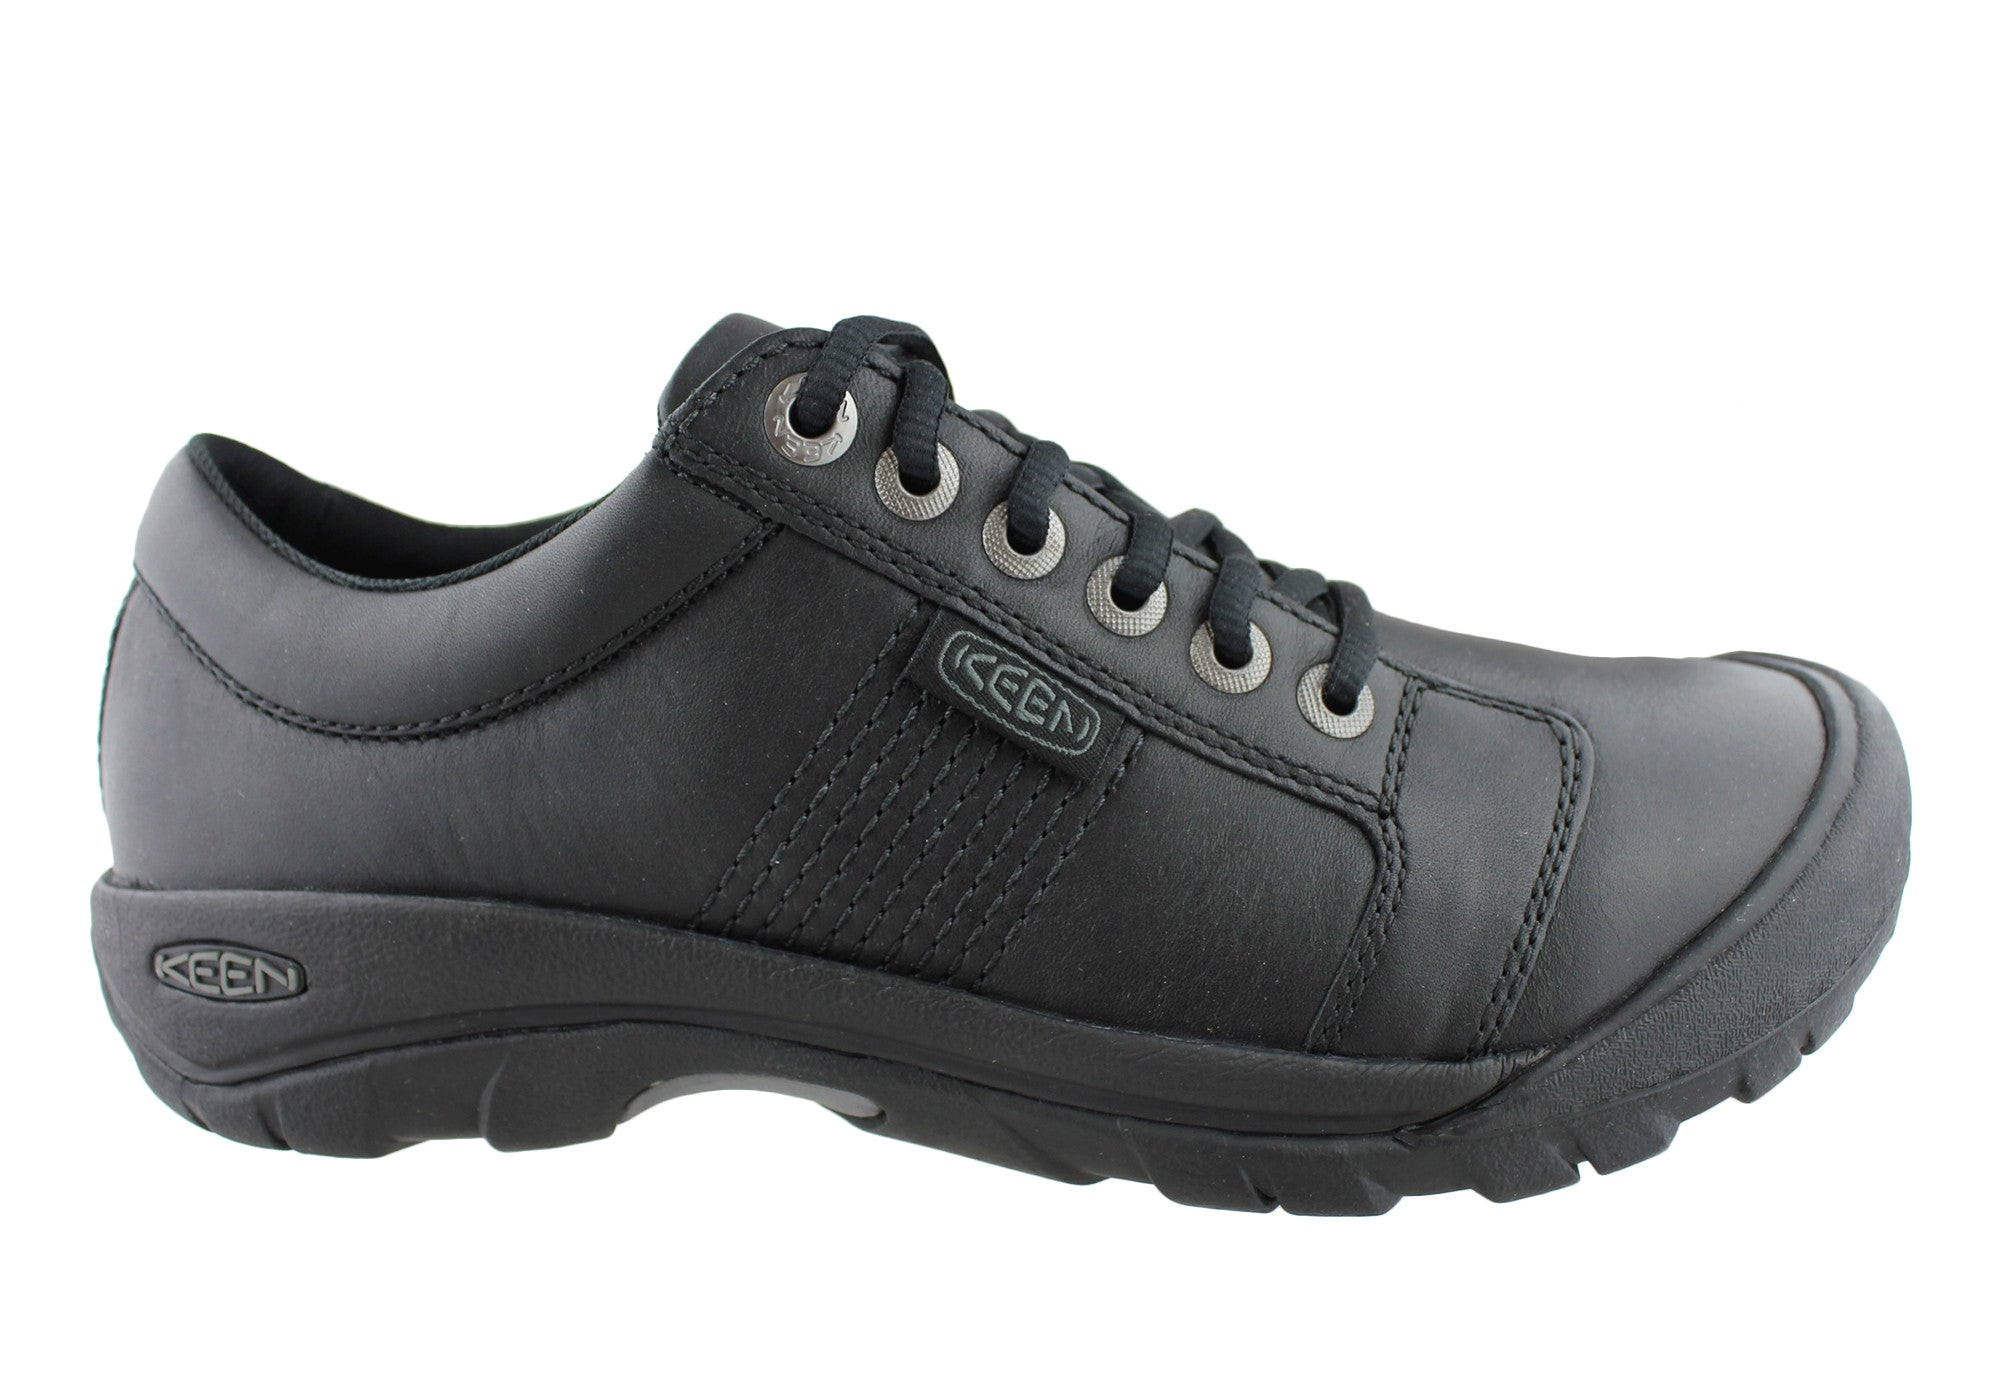 Keen Keen Keen Austin Uomo Pelle Wide Fit Casual Shoes dd6076